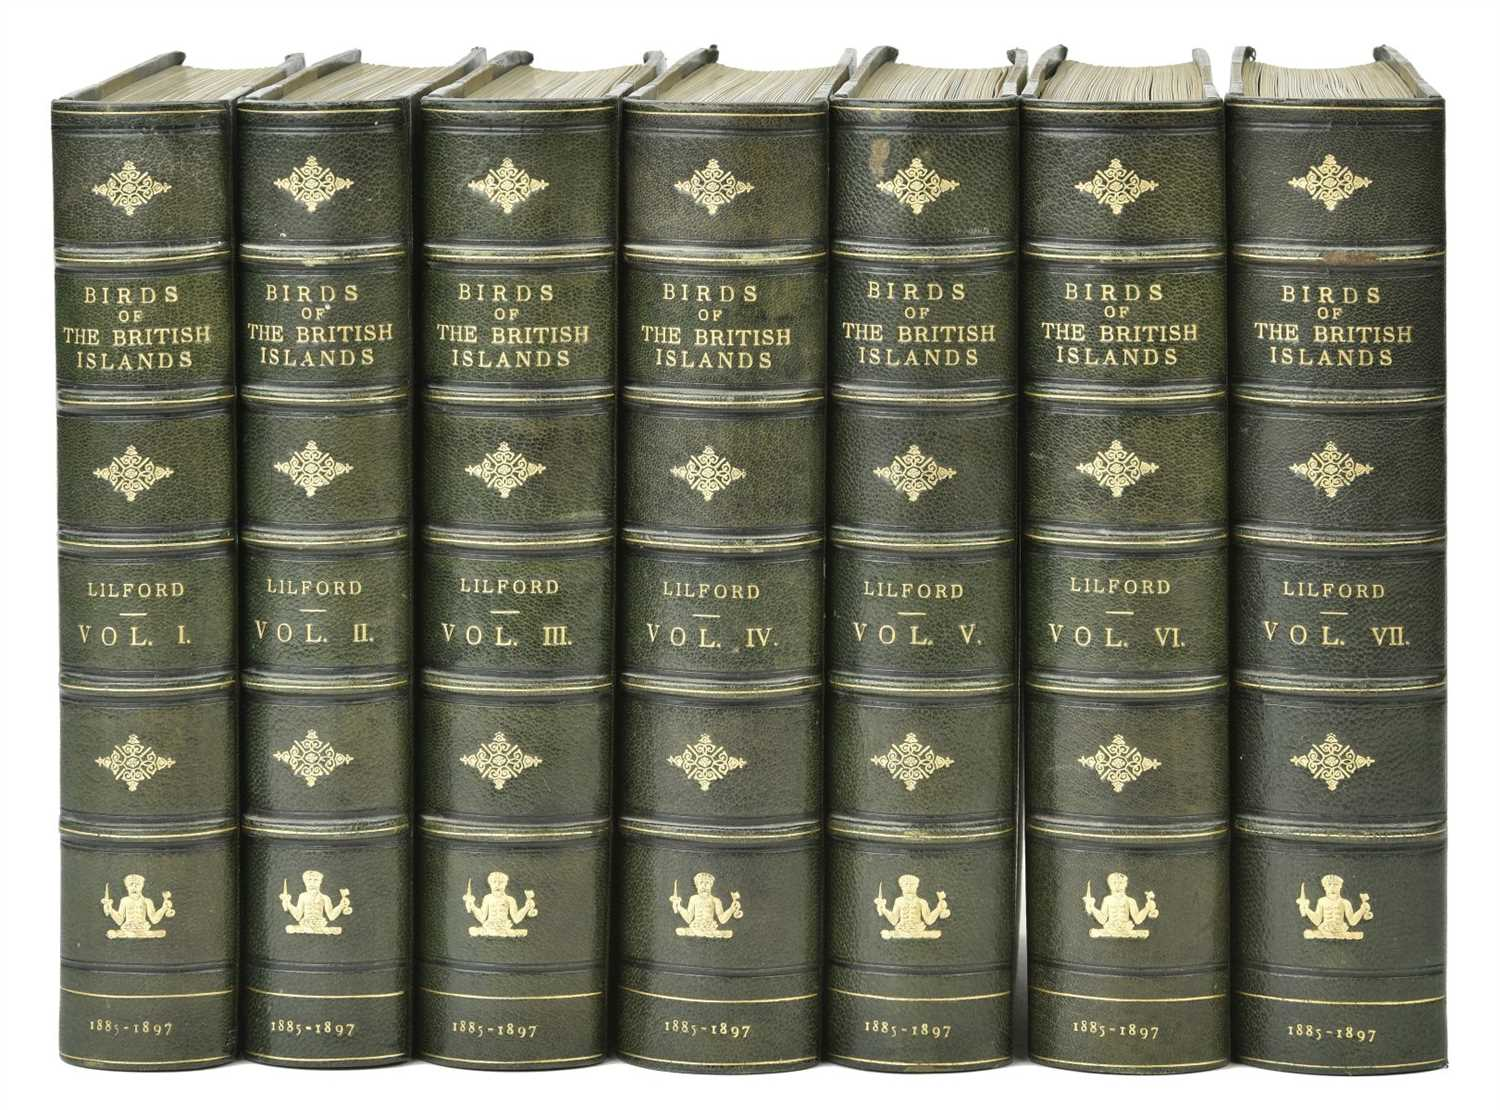 Lot 106-Lilford (Thomas). Coloured Figures of the Birds of the British Islands, 7 volumes, 1885-97